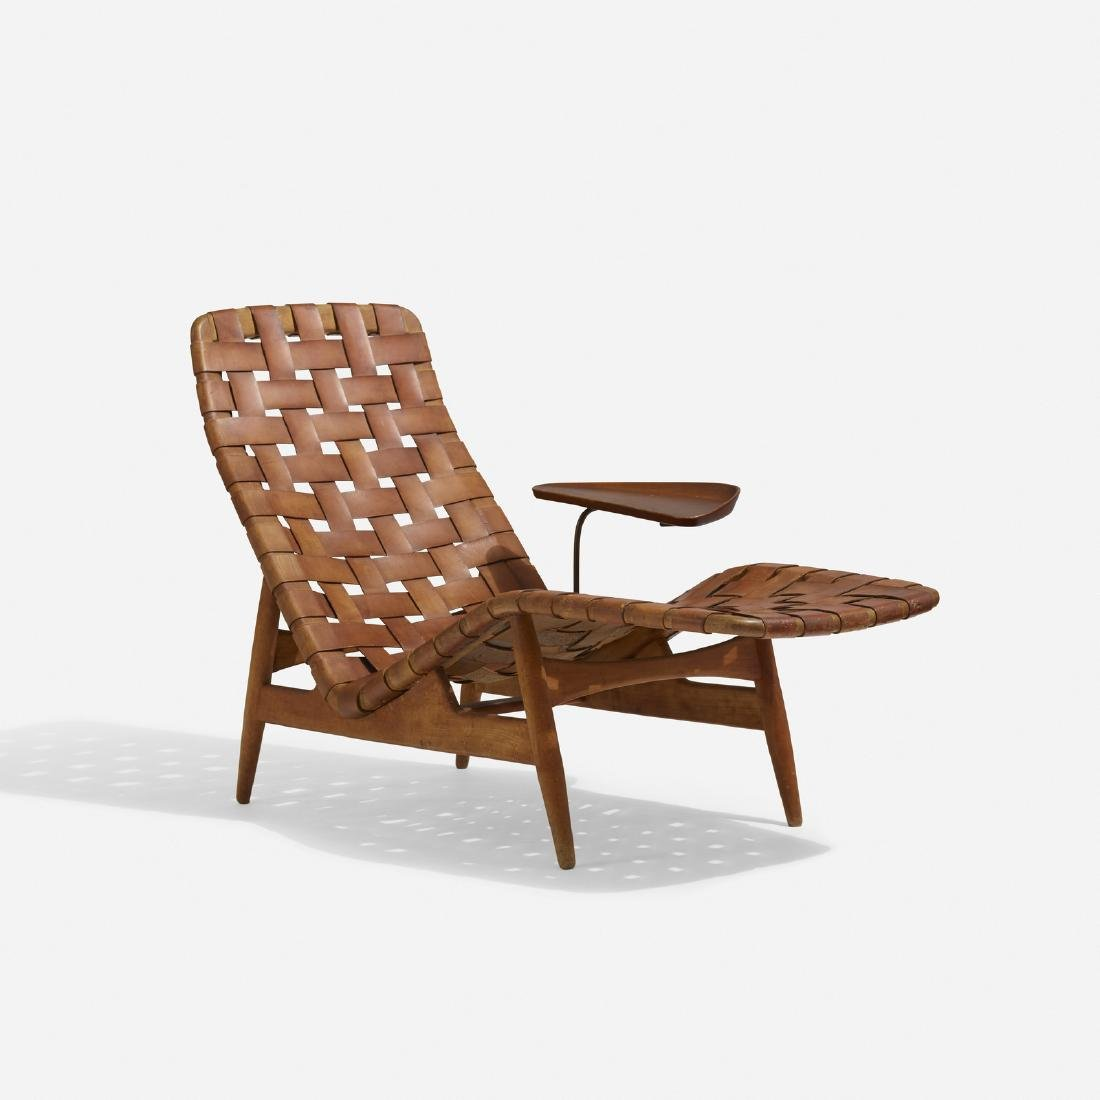 Arne Vodder, Rare chaise lounge